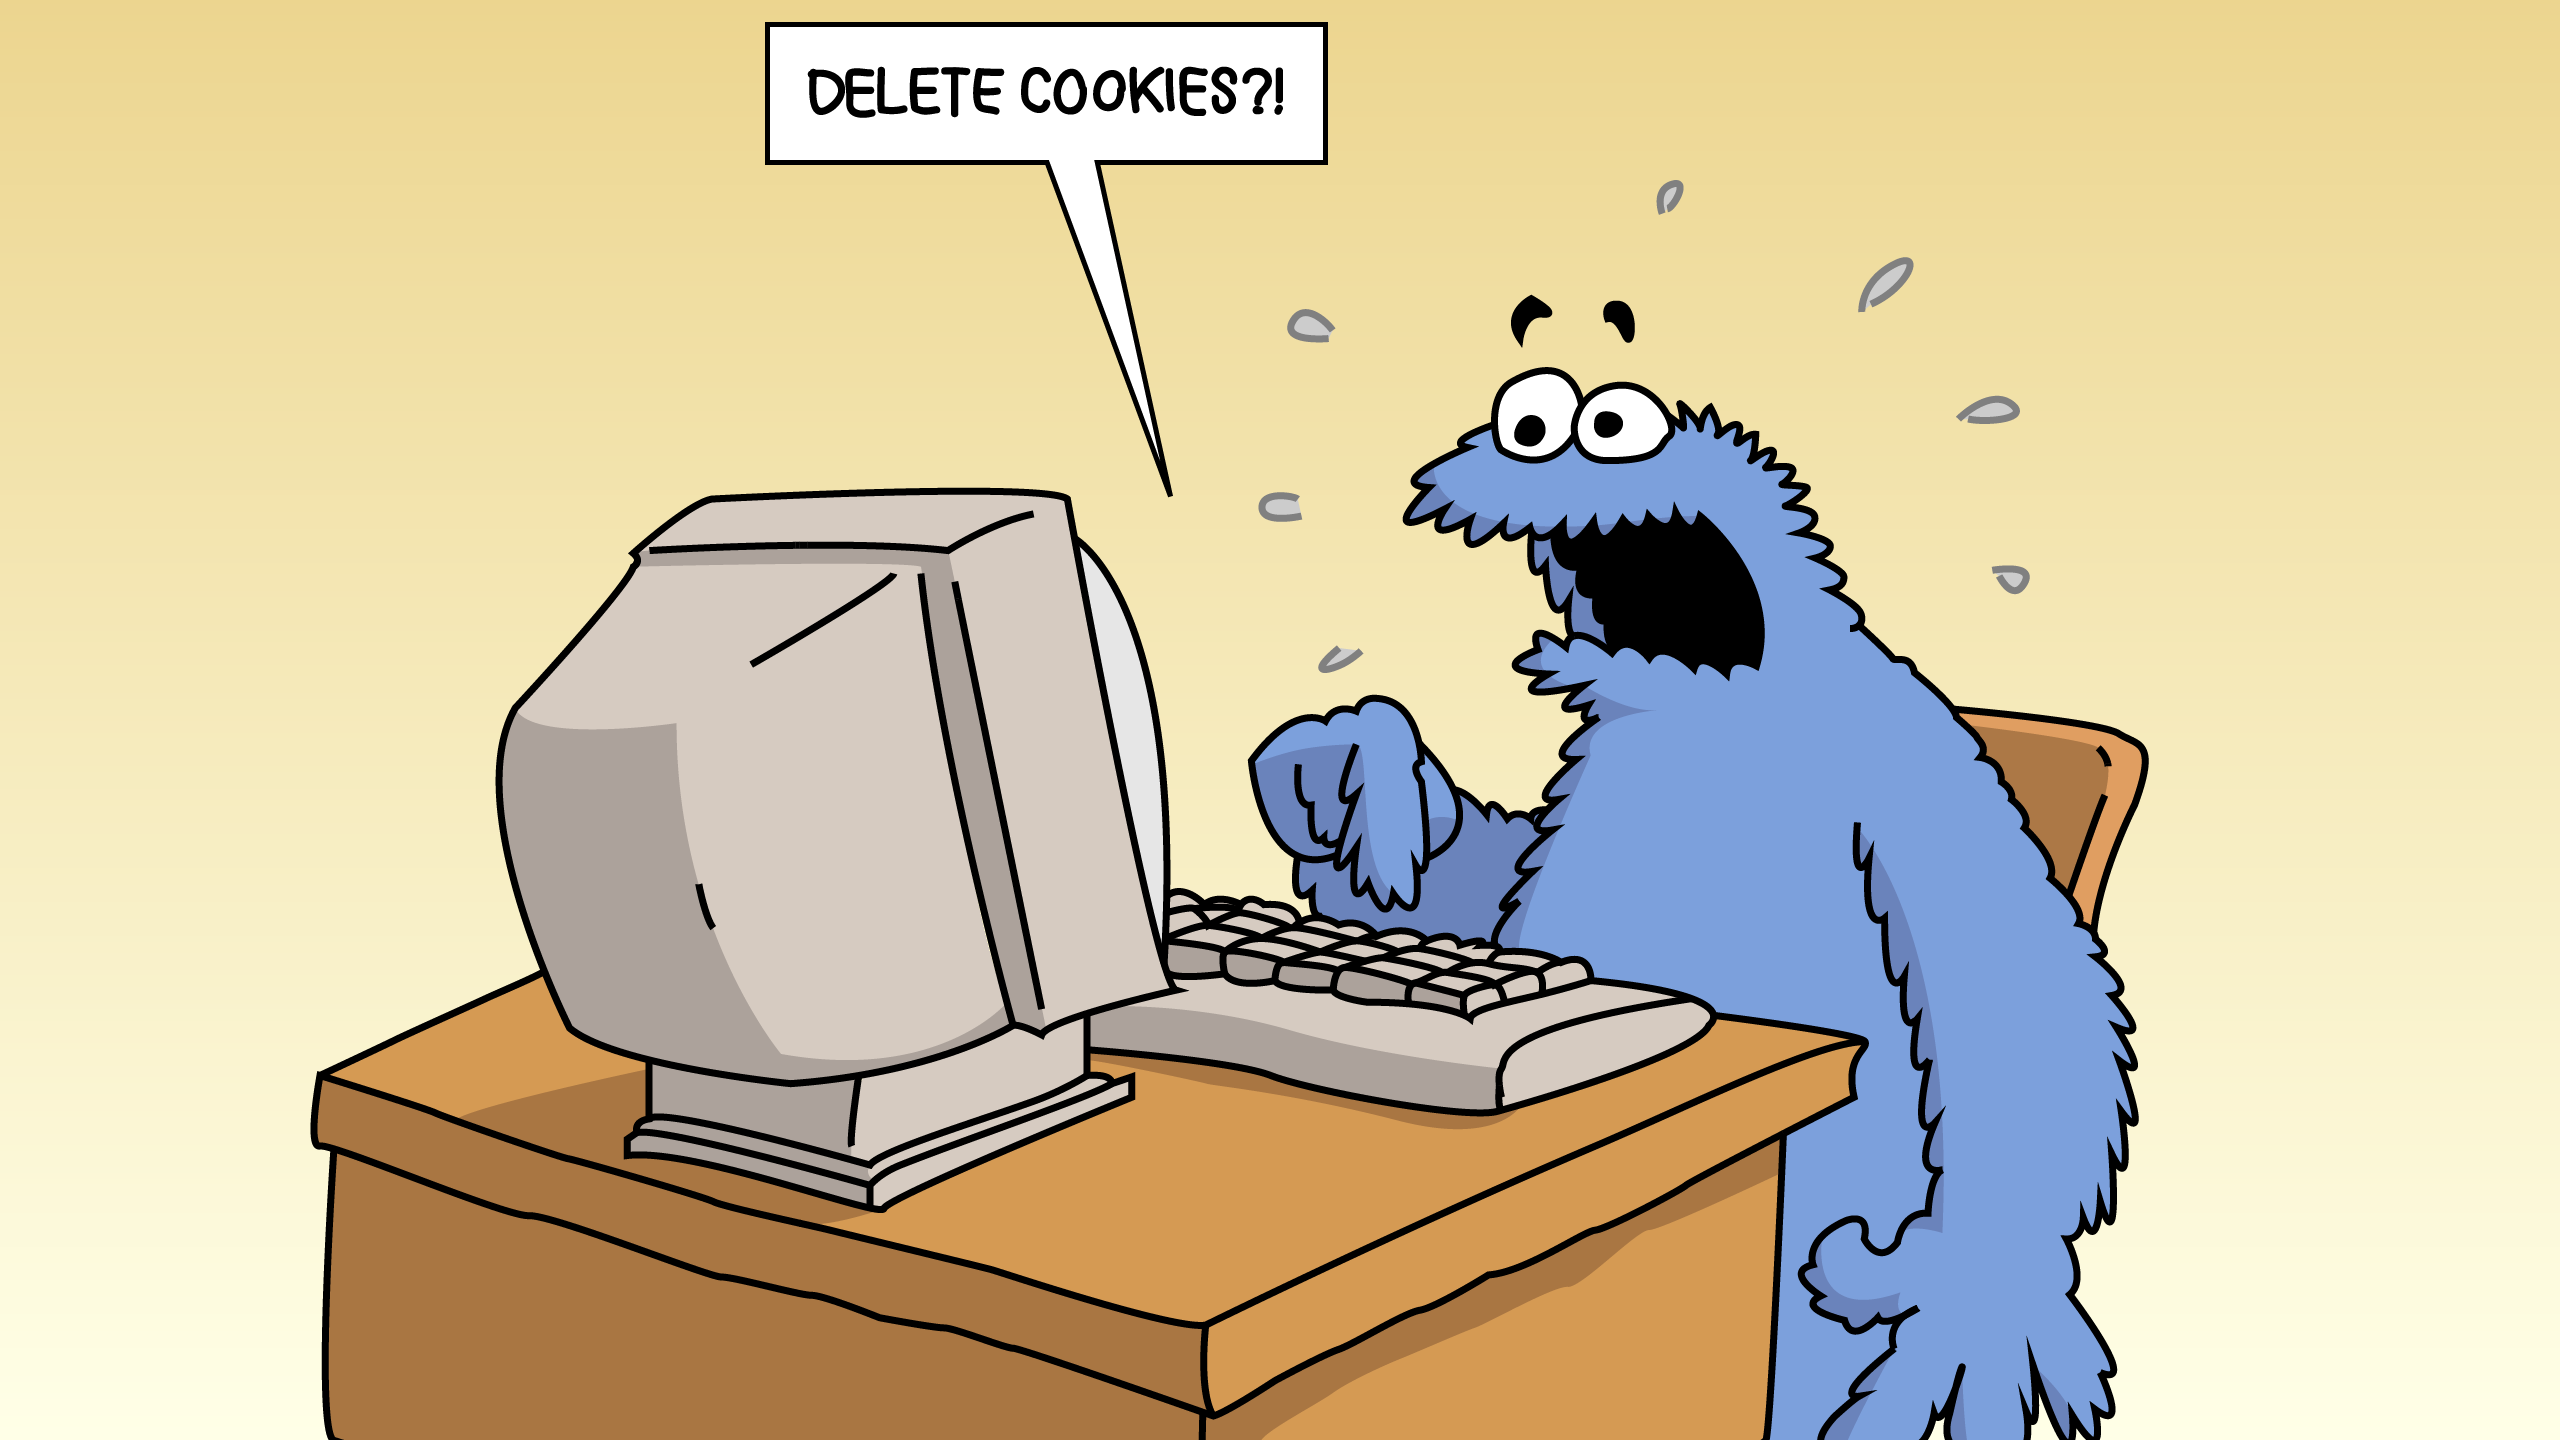 Cookie Monster instructed to Delete Cookies